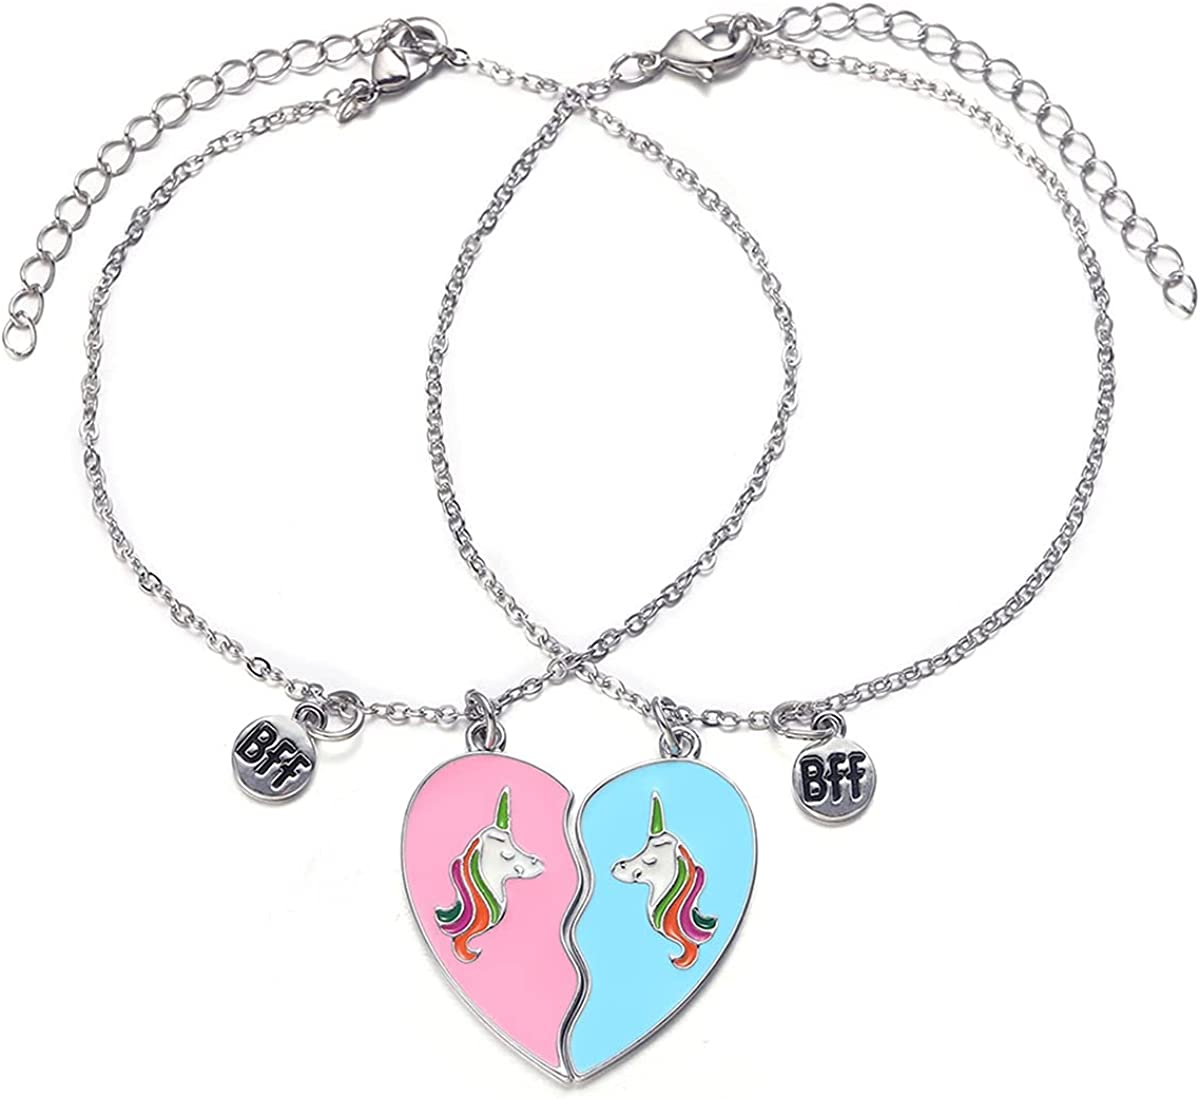 BFF Necklace 40% OFF Cheap Sale for 2 Best Jewelry Ranking TOP9 Cute Friendship Friend Llama